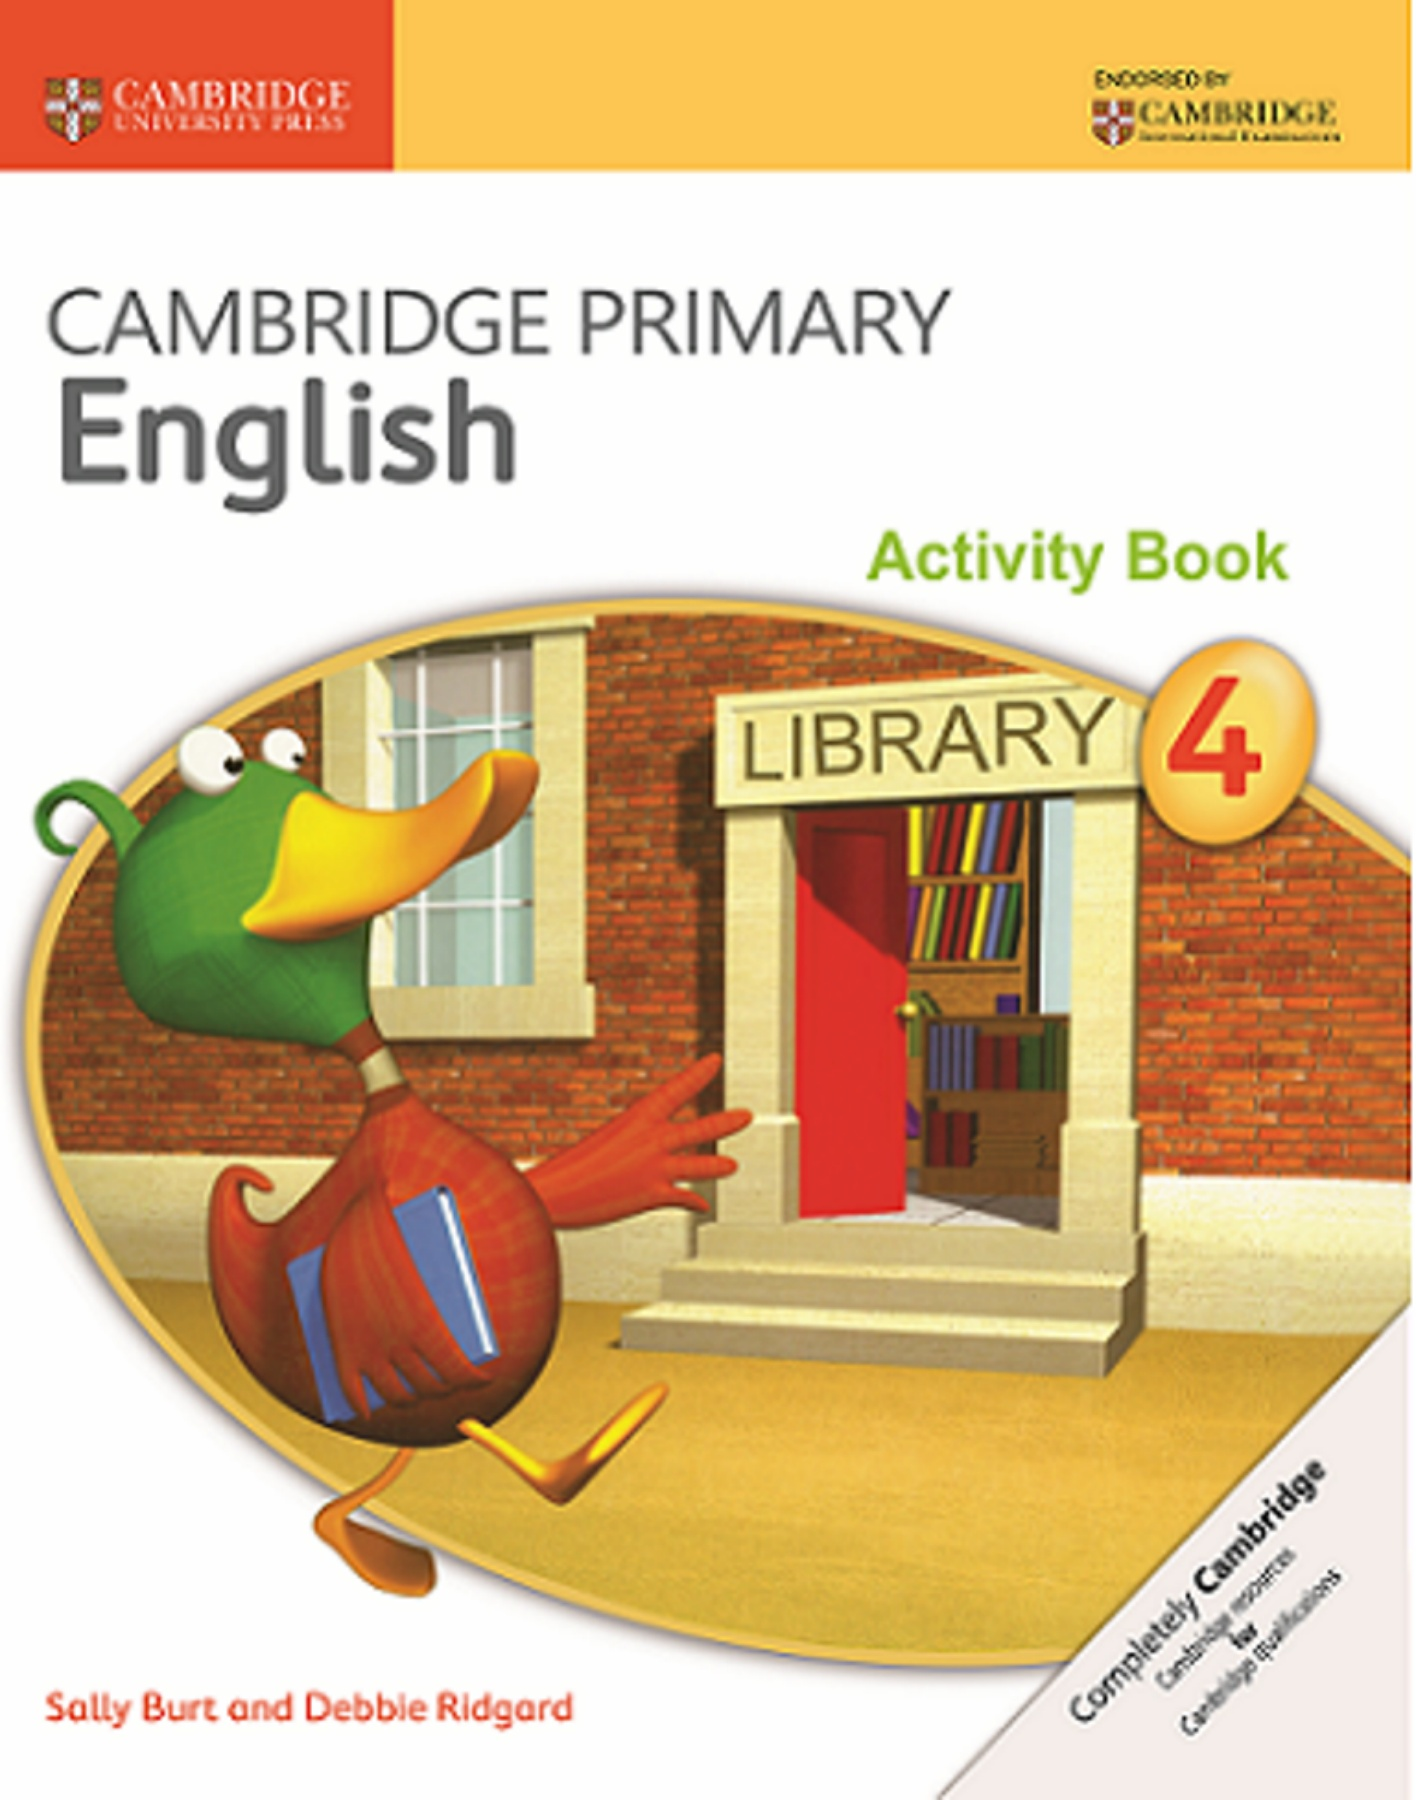 Primary 4 English Activity Book Pages 1 - 50 - Text Version